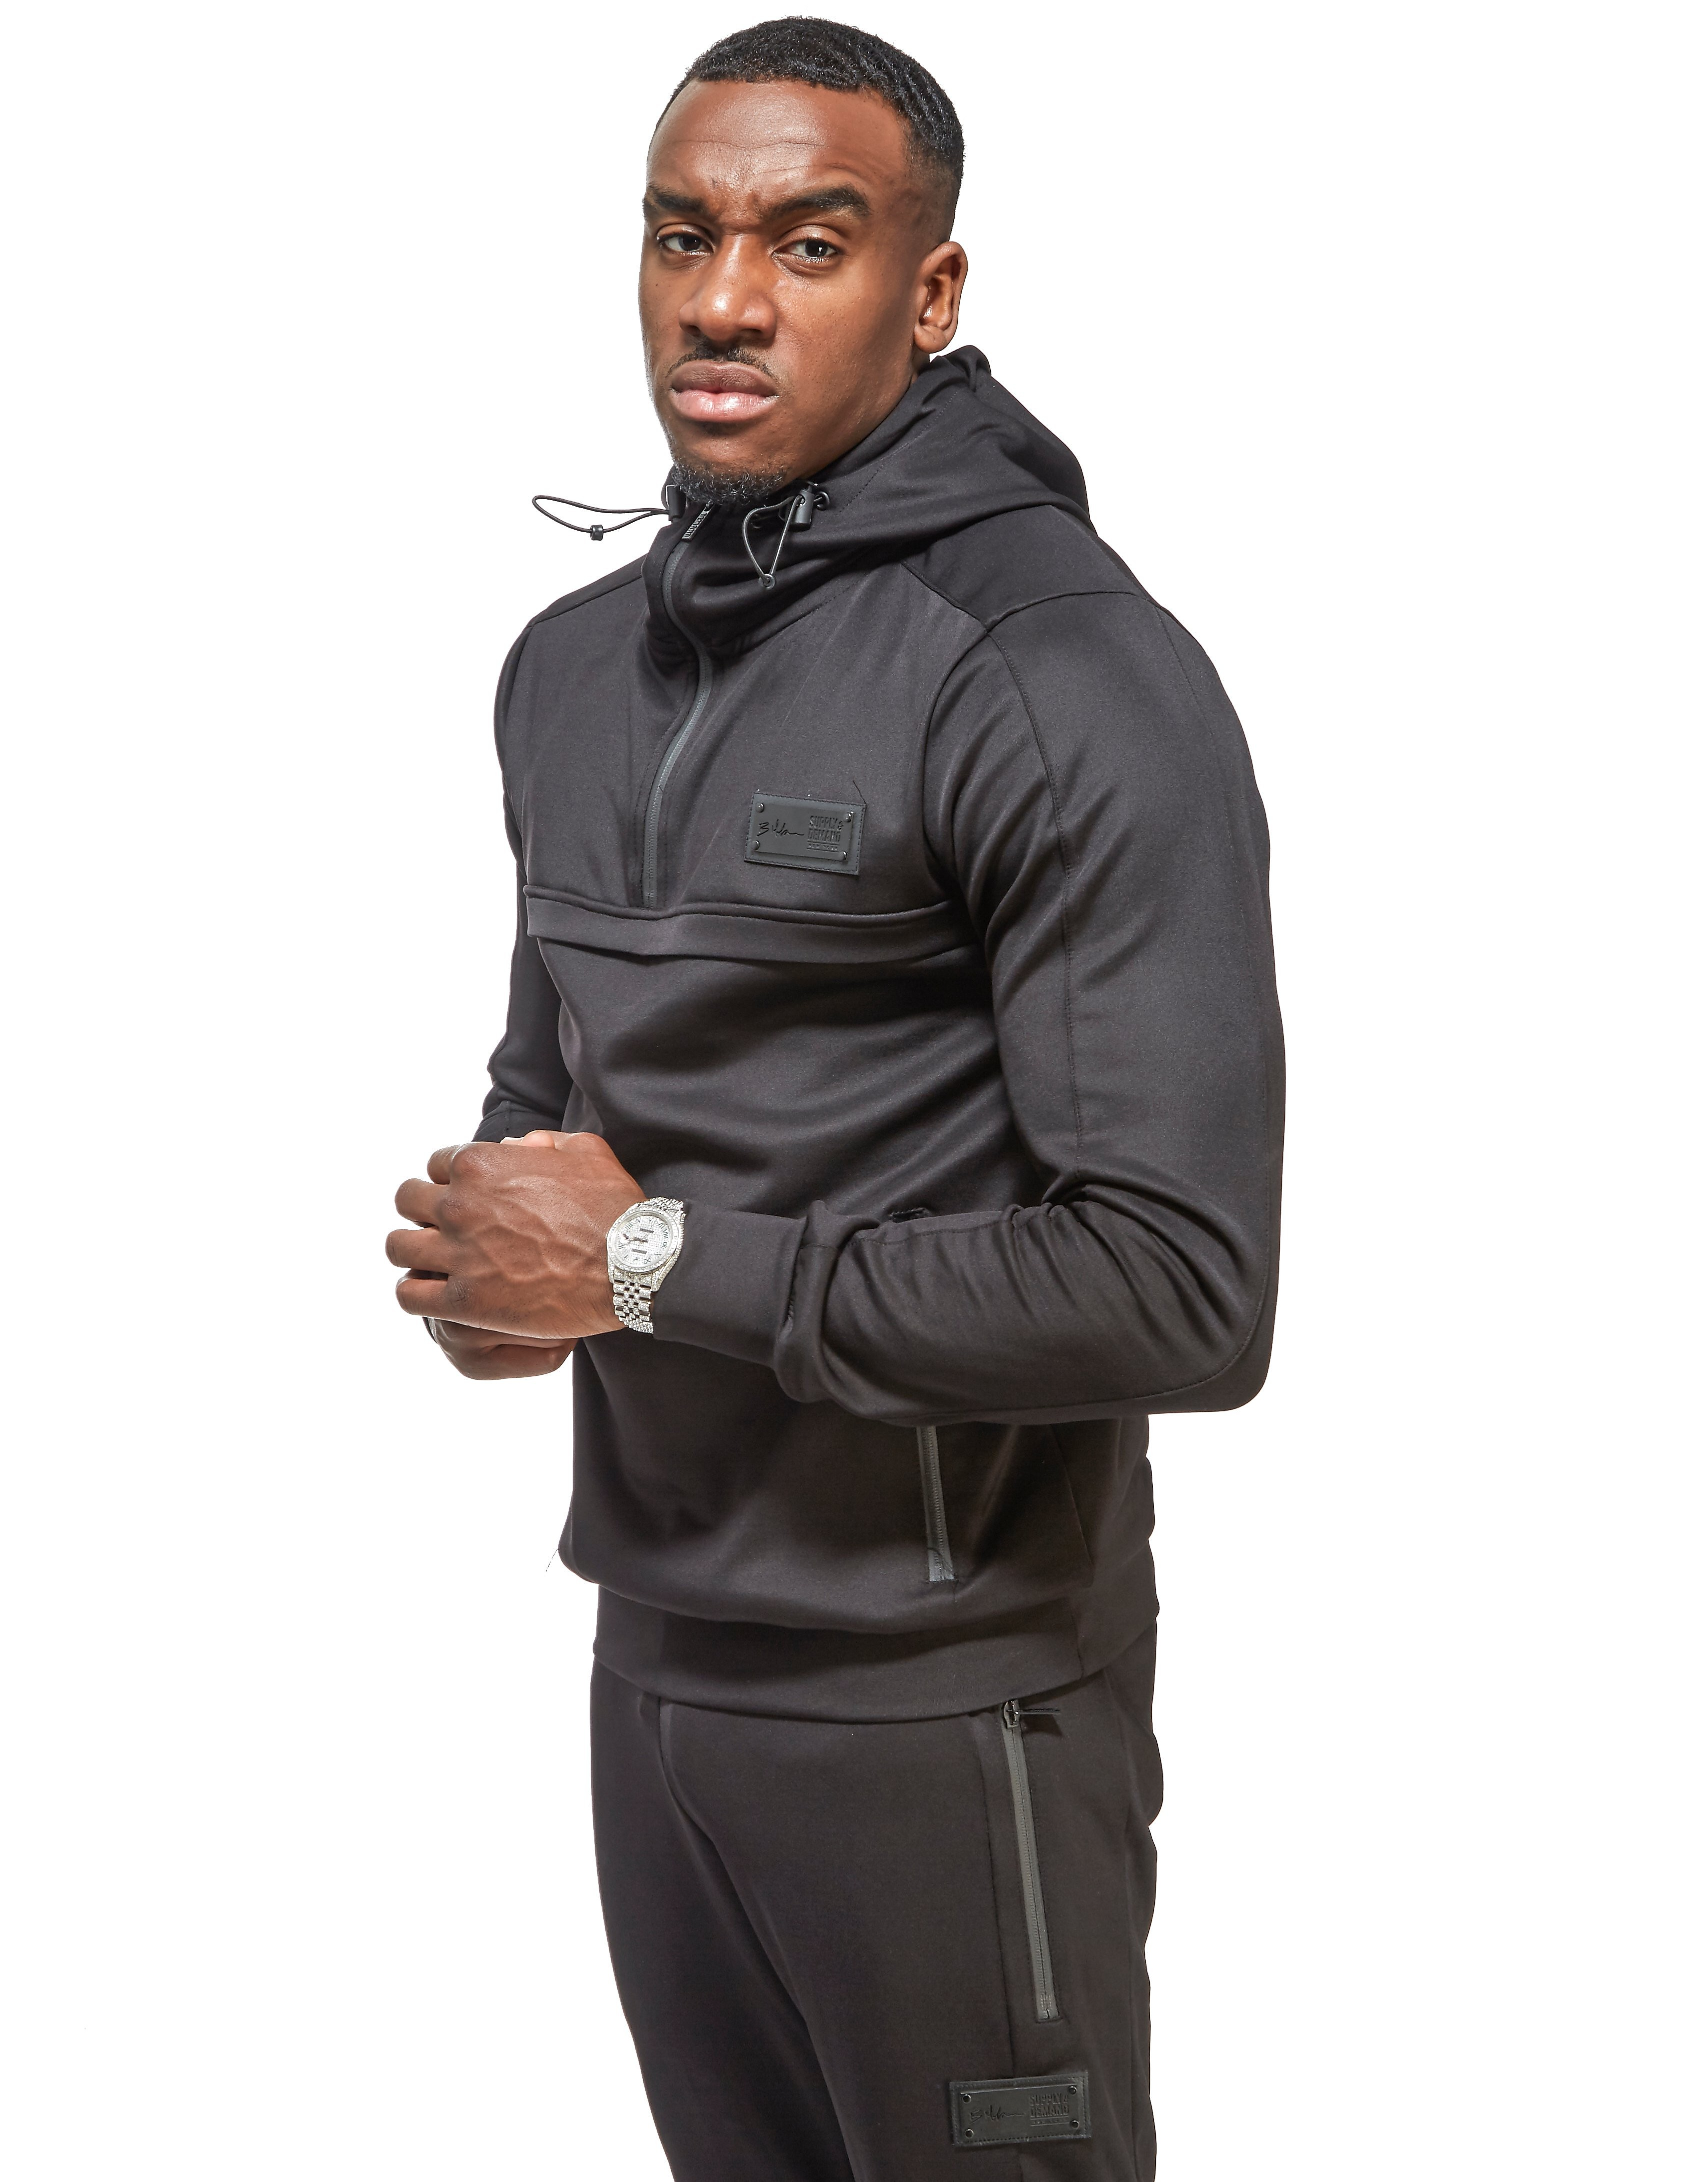 Supply & Demand Bugzy Malone BM Hoody